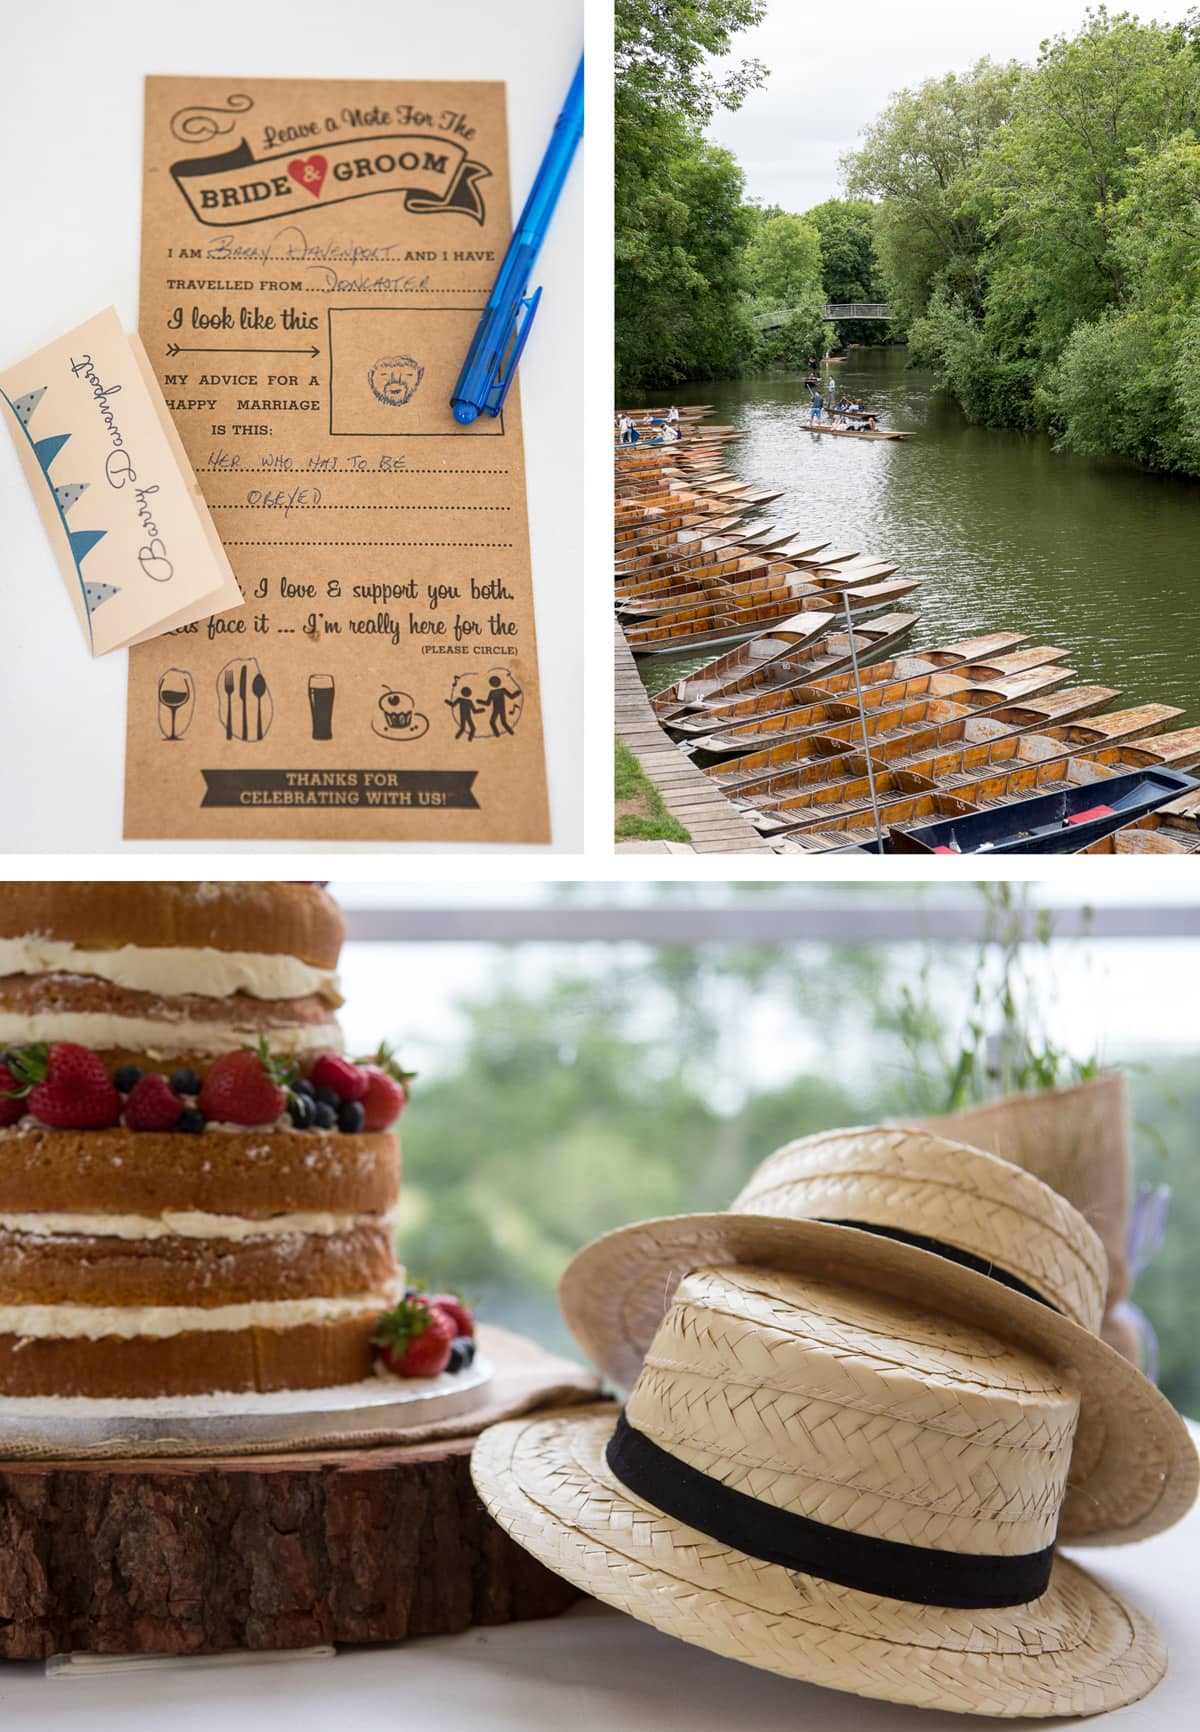 Collage of images from left: A completed note for the bride and groom, complete with sketch; punts lined up on the river Cherwell; straw boater hats piled up next to the wedding cake